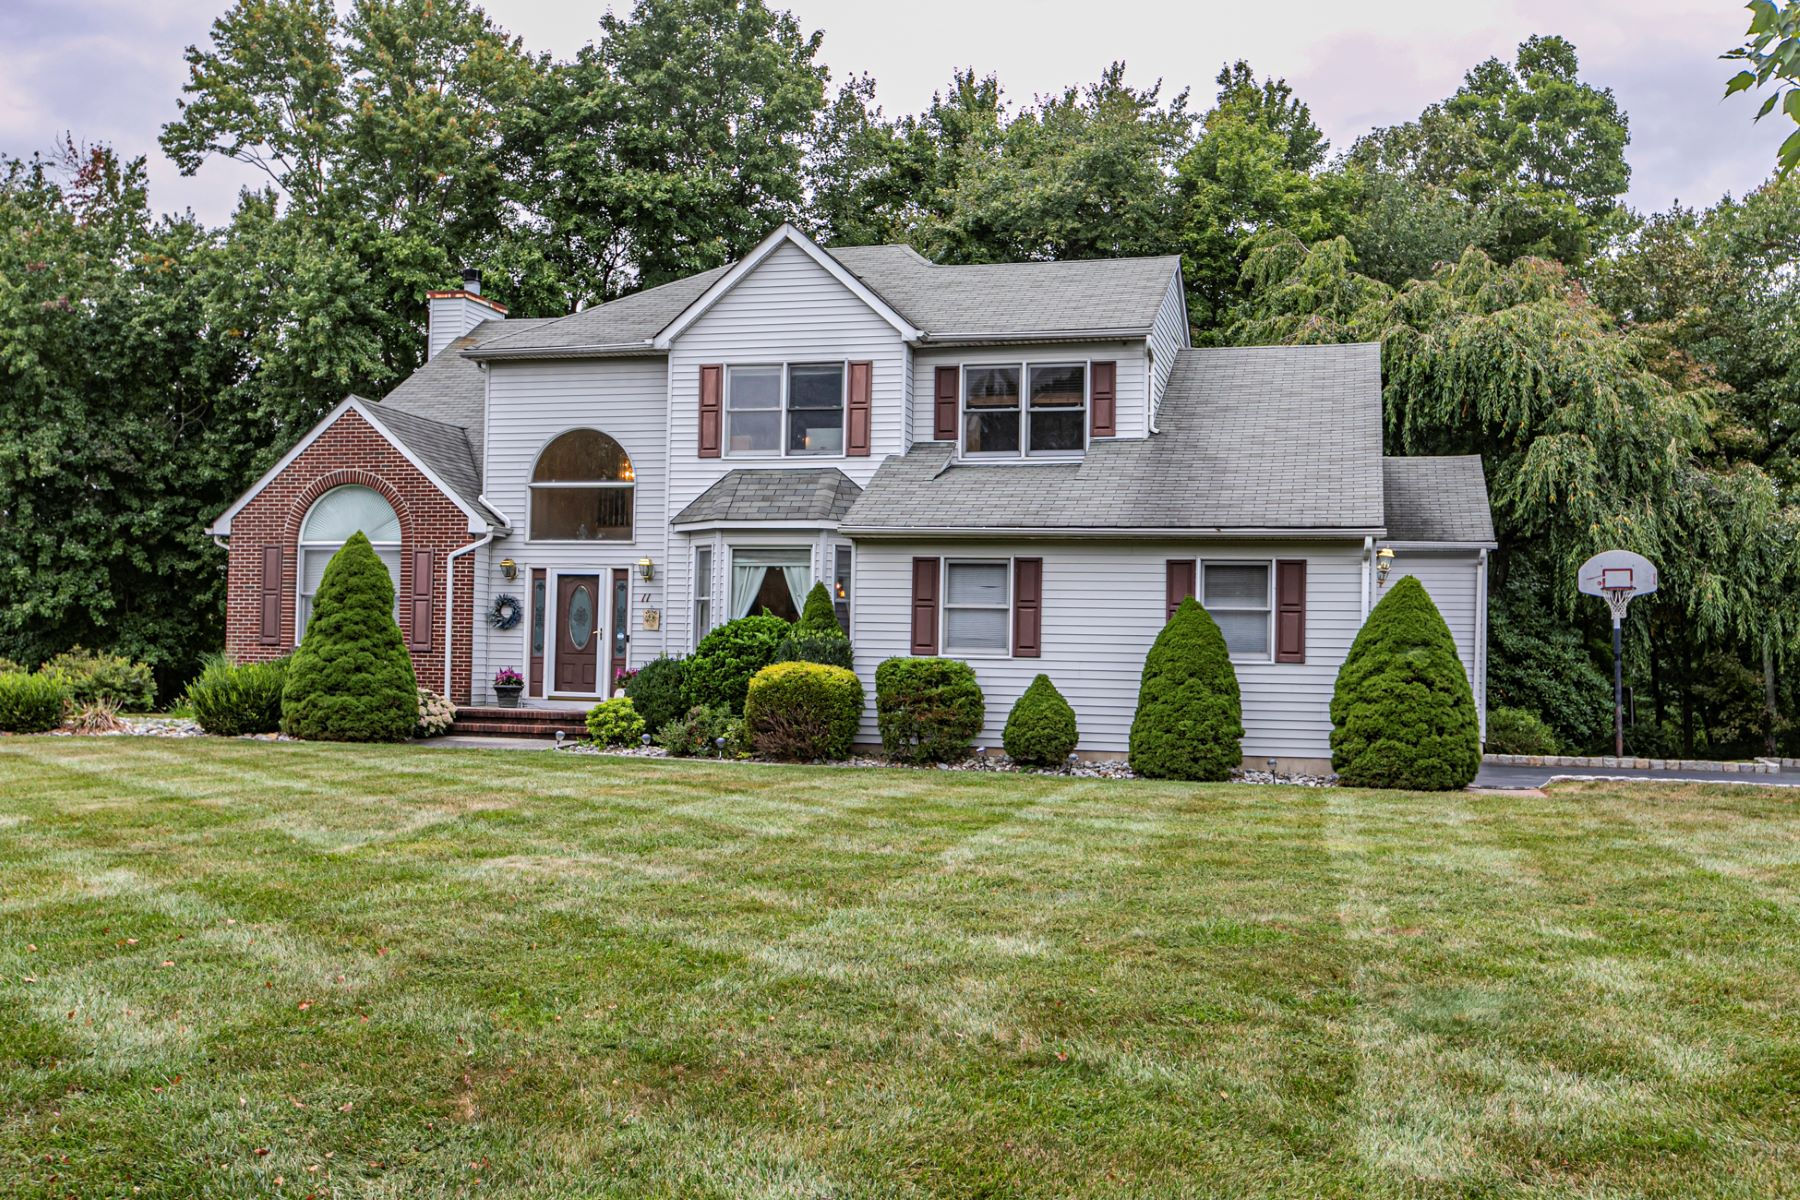 Franklin Colonial Offers Beautiful Comforts 11 Hunters Crossing Road, Franklin Township, New Jersey 08873 Vereinigte Staaten